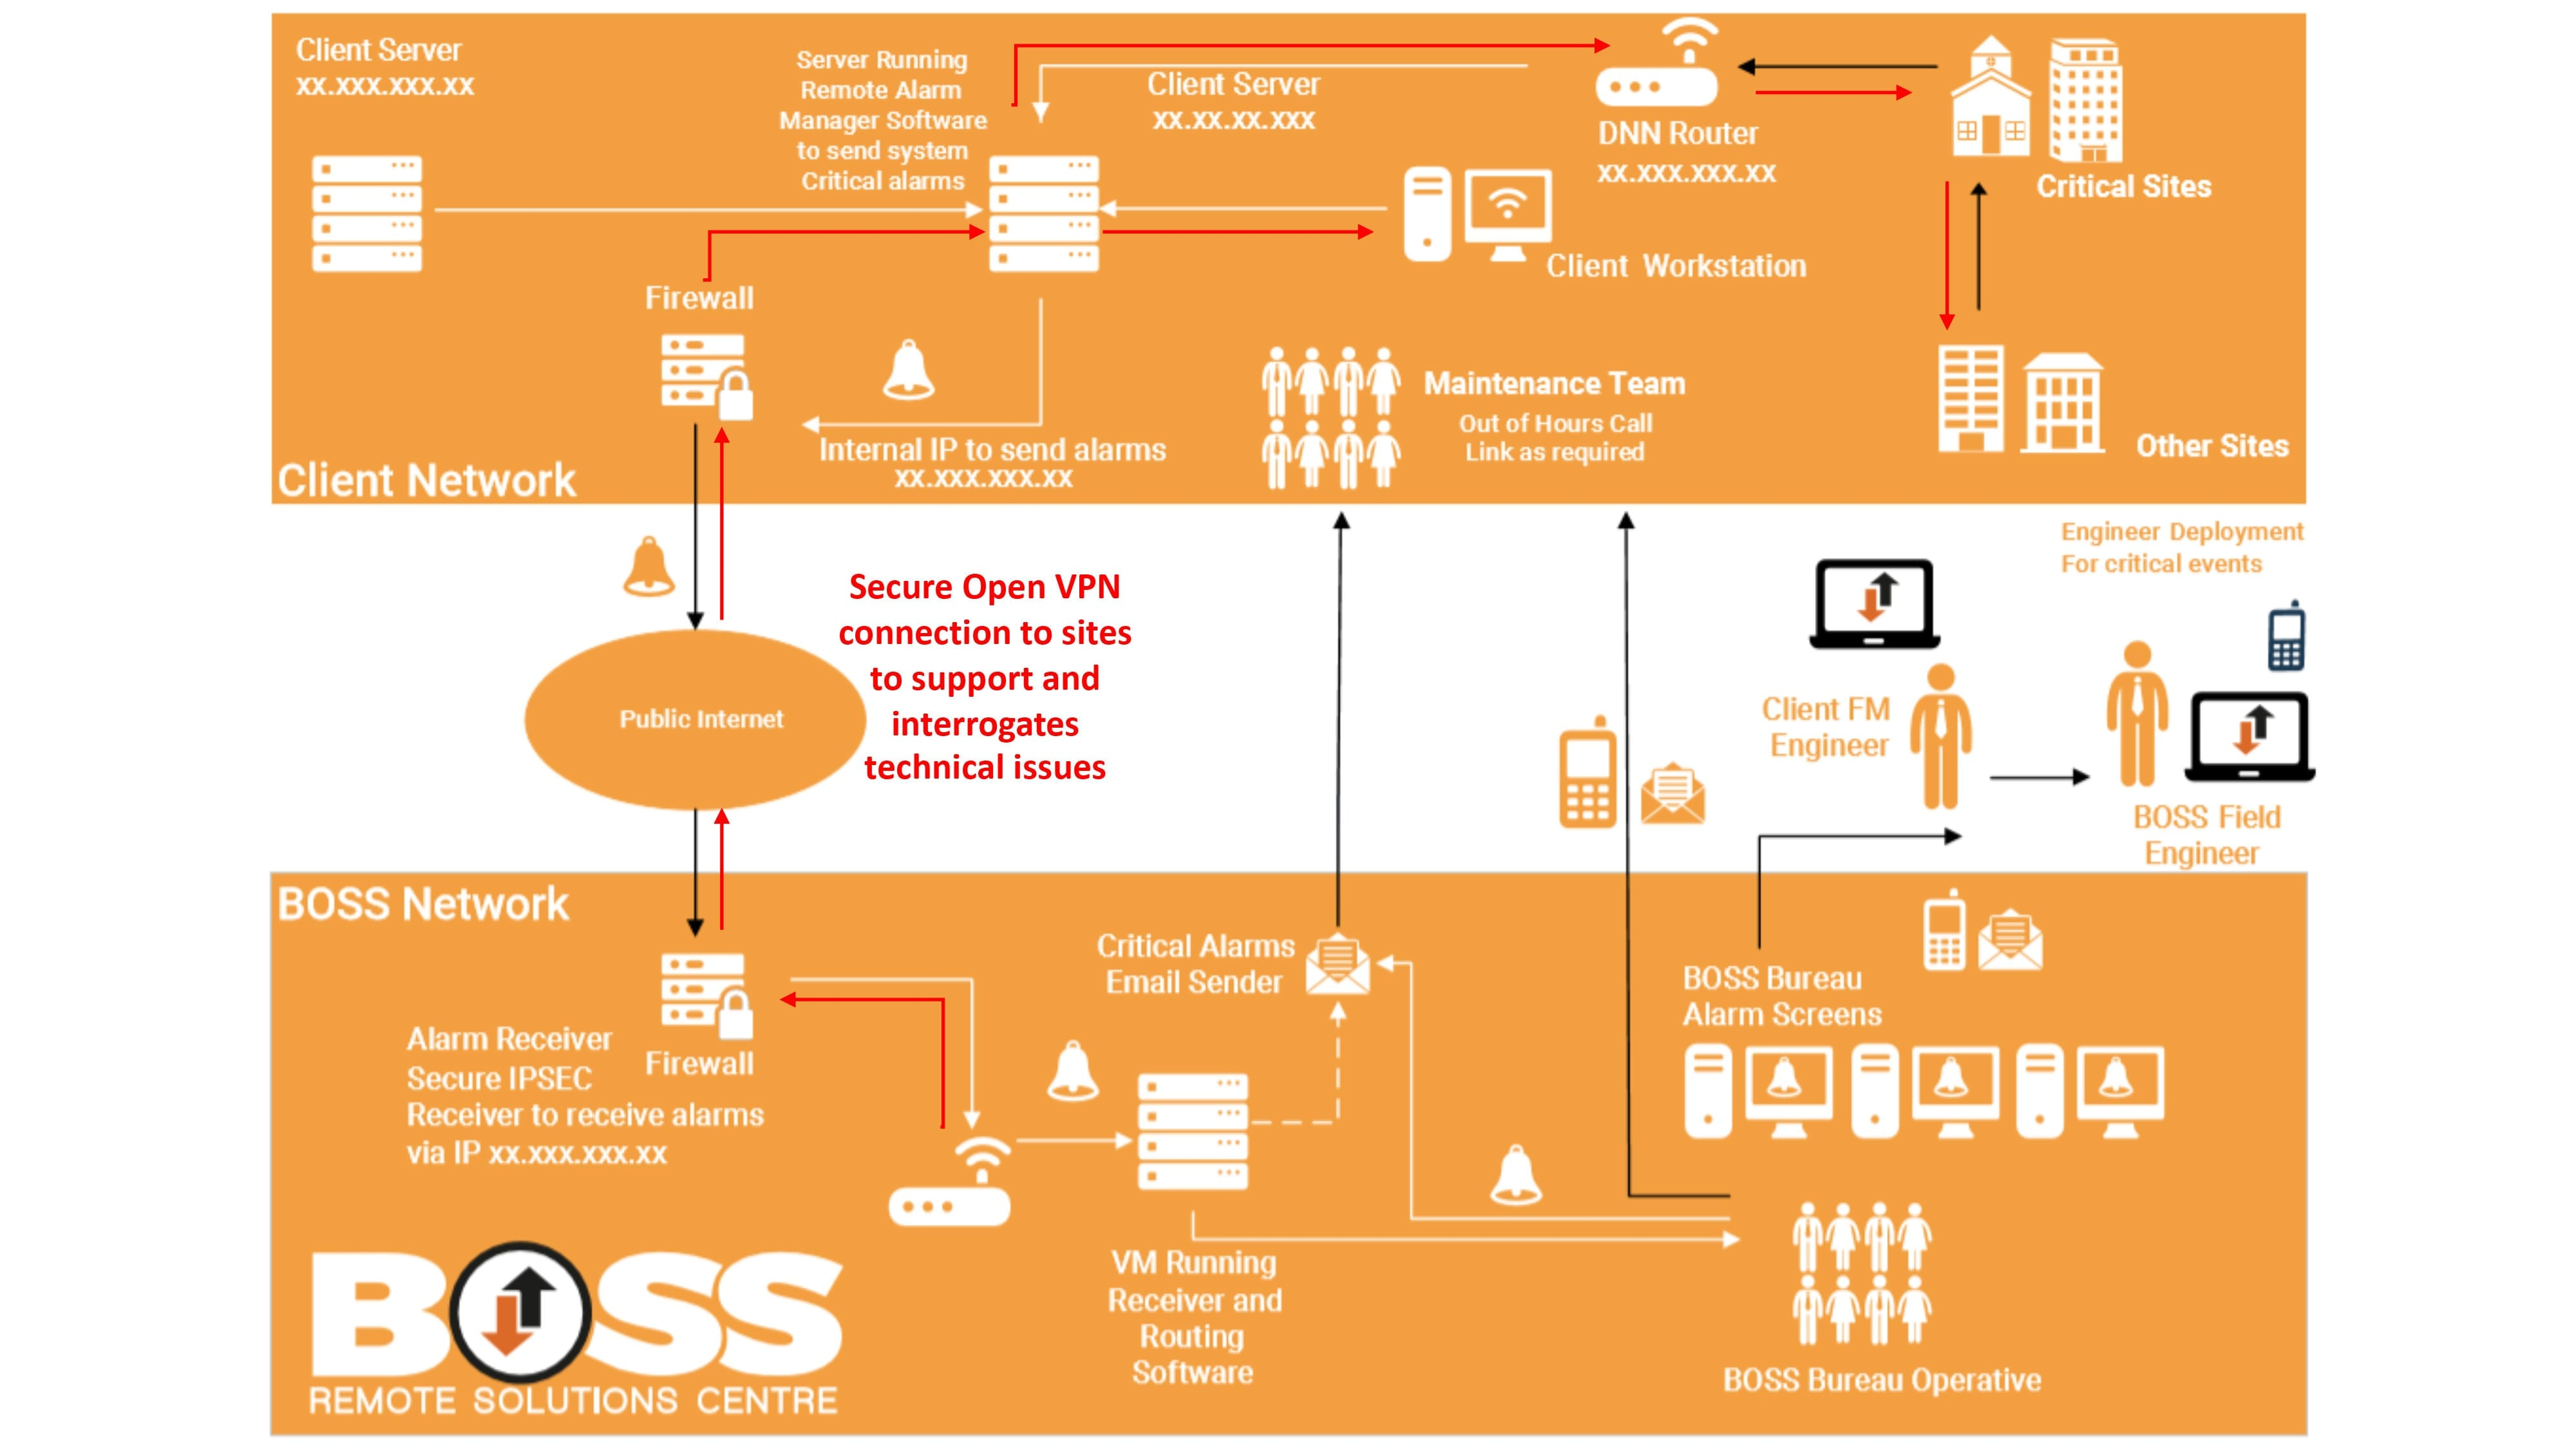 Boss Remote Solutions Centre Client Network